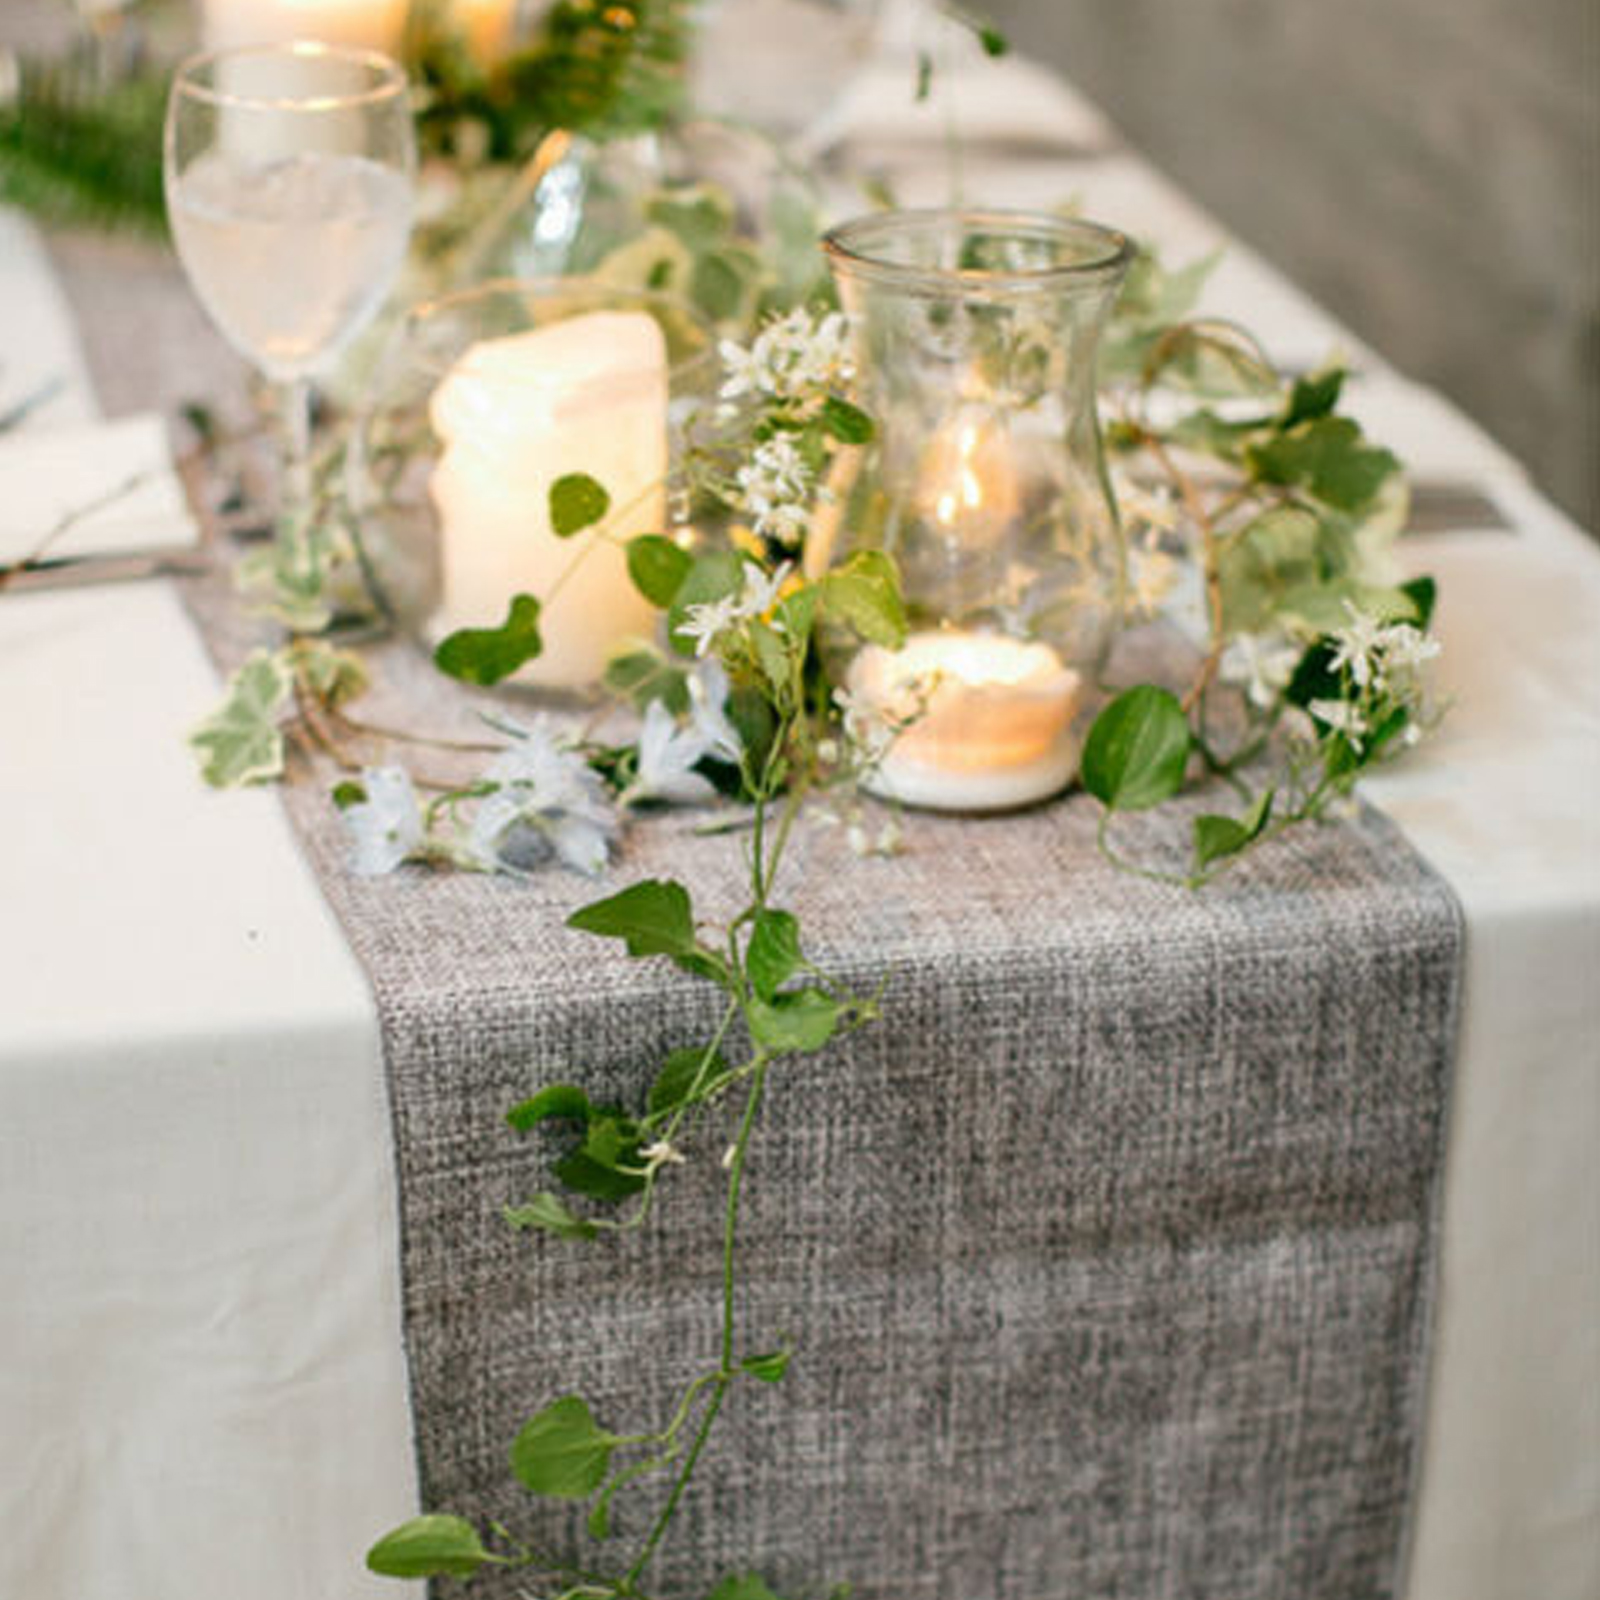 1pcs Rustic Table Runner Natural Imitated Linen Table Cloth Wedding Decor For Wedding Christmas Party